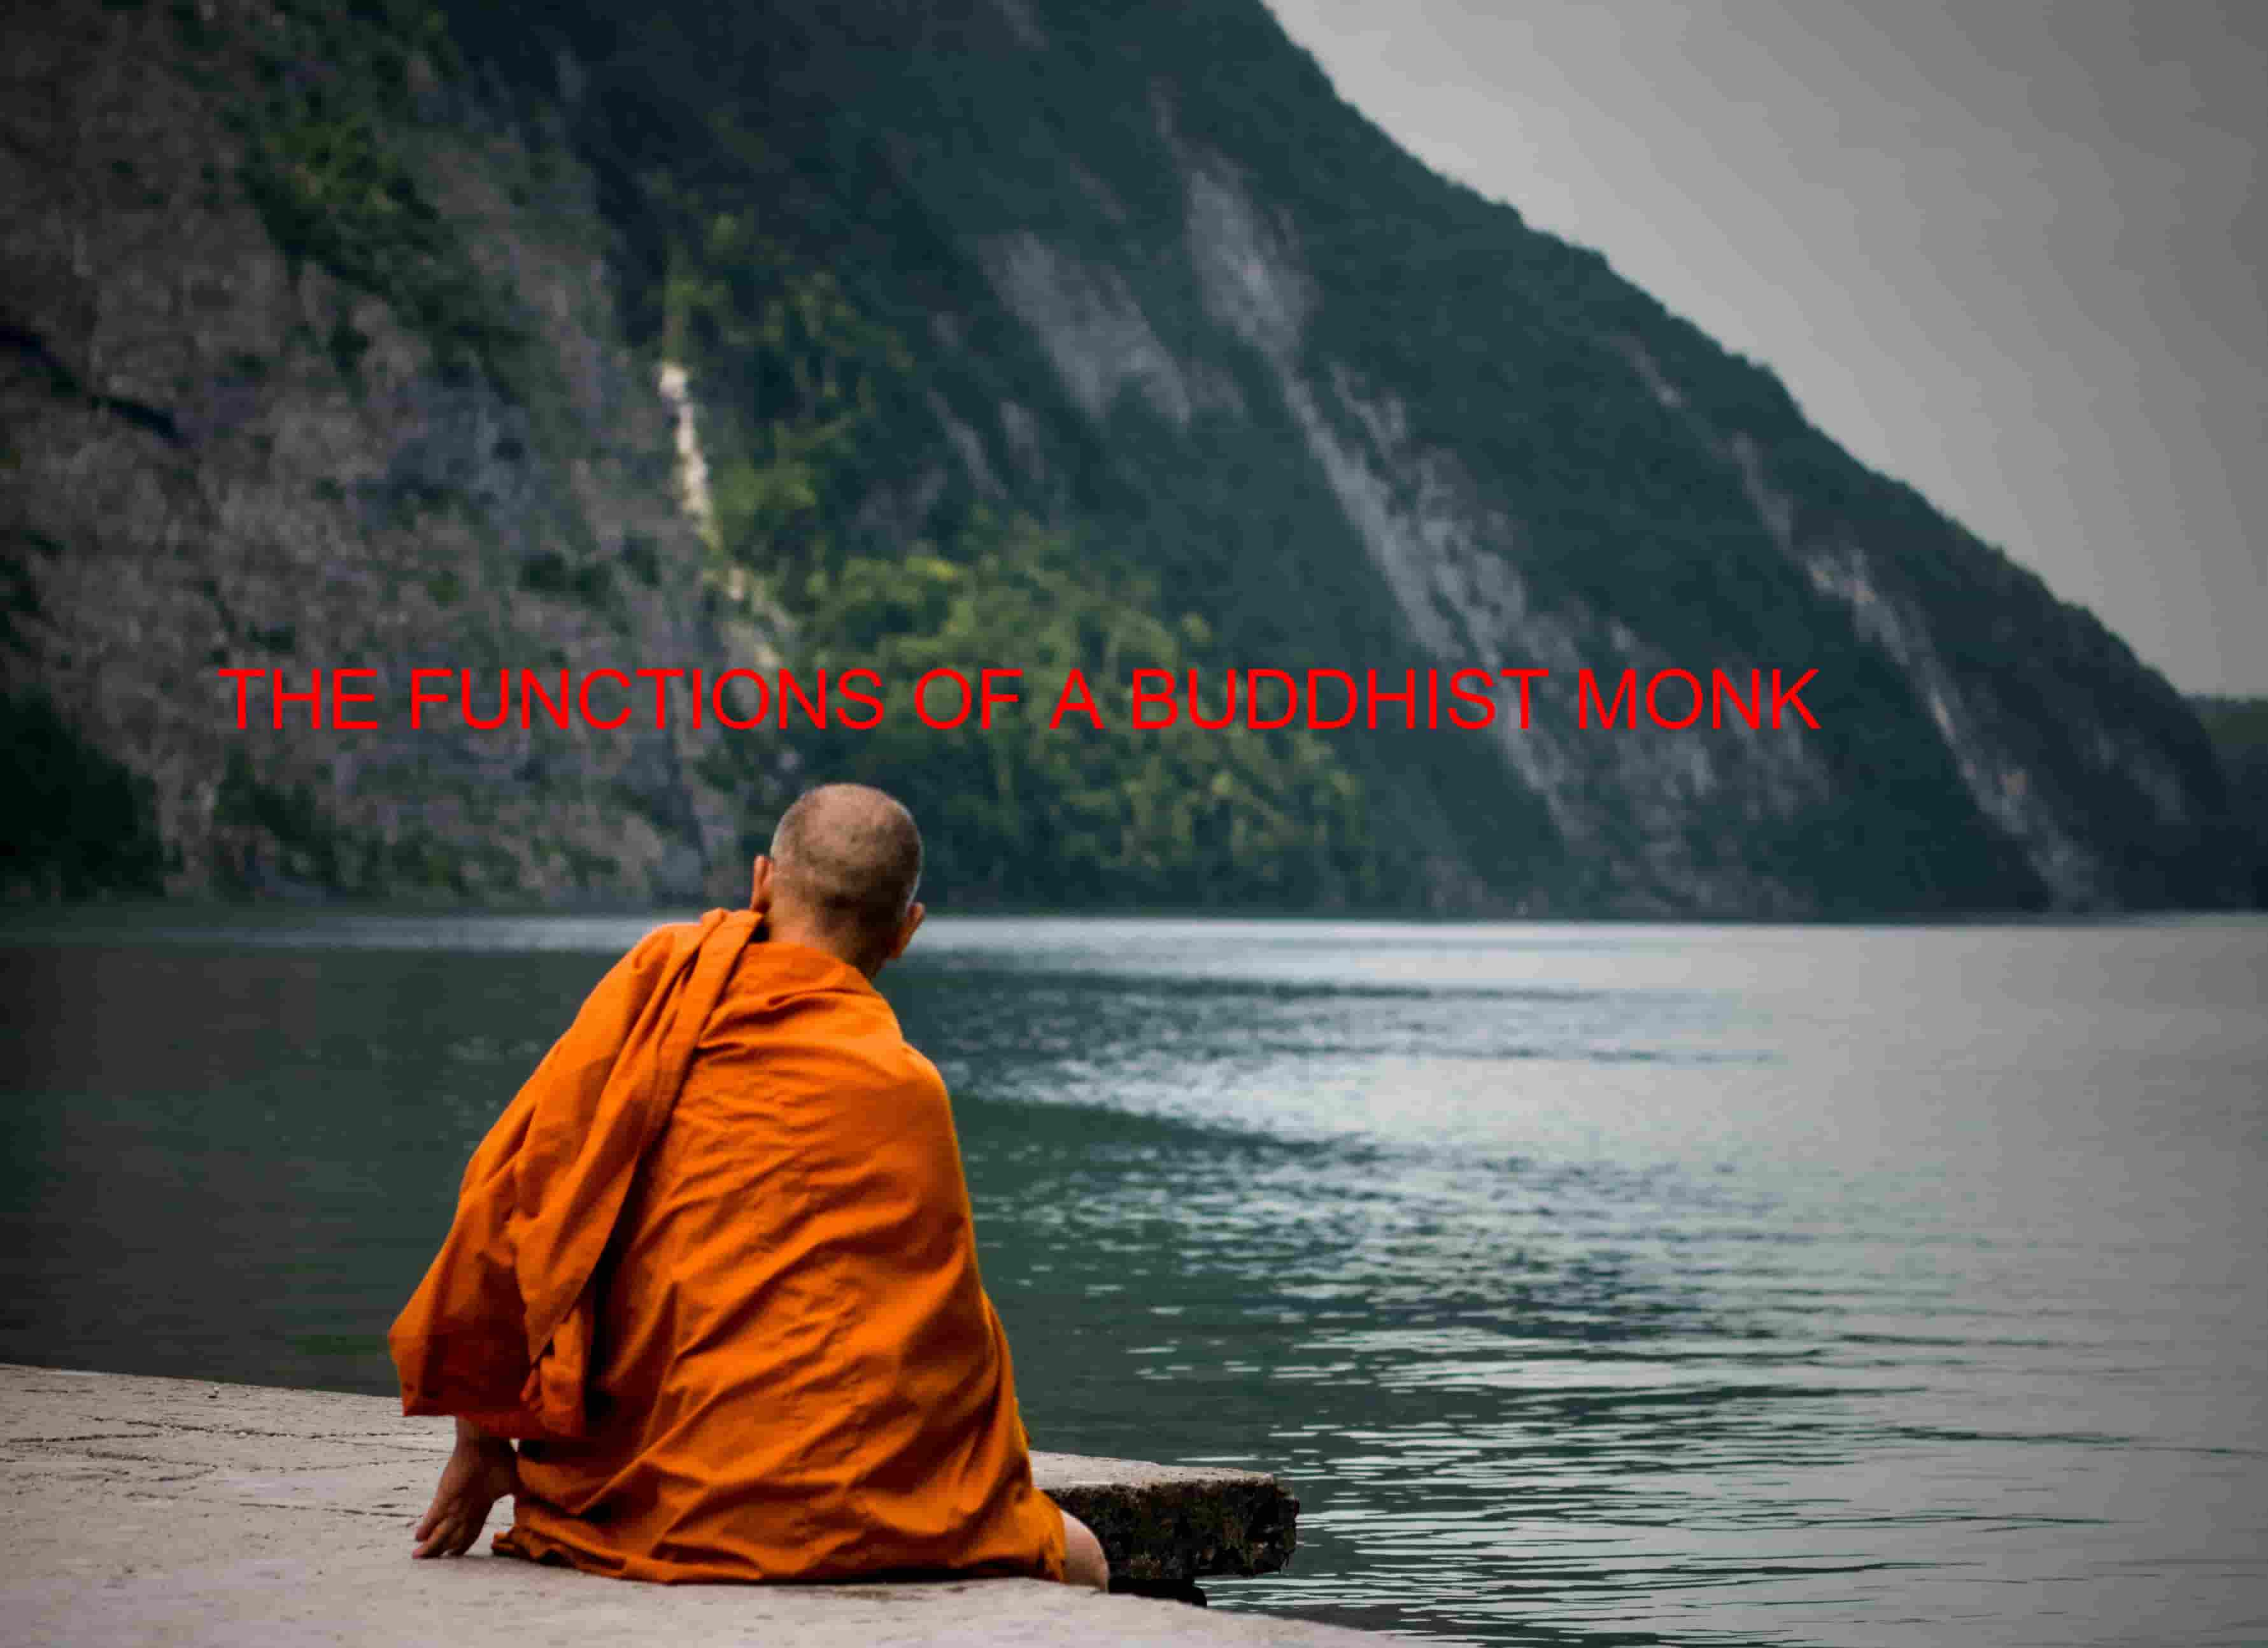 THE FUNCTIONS OF A BUDDHIST MONK